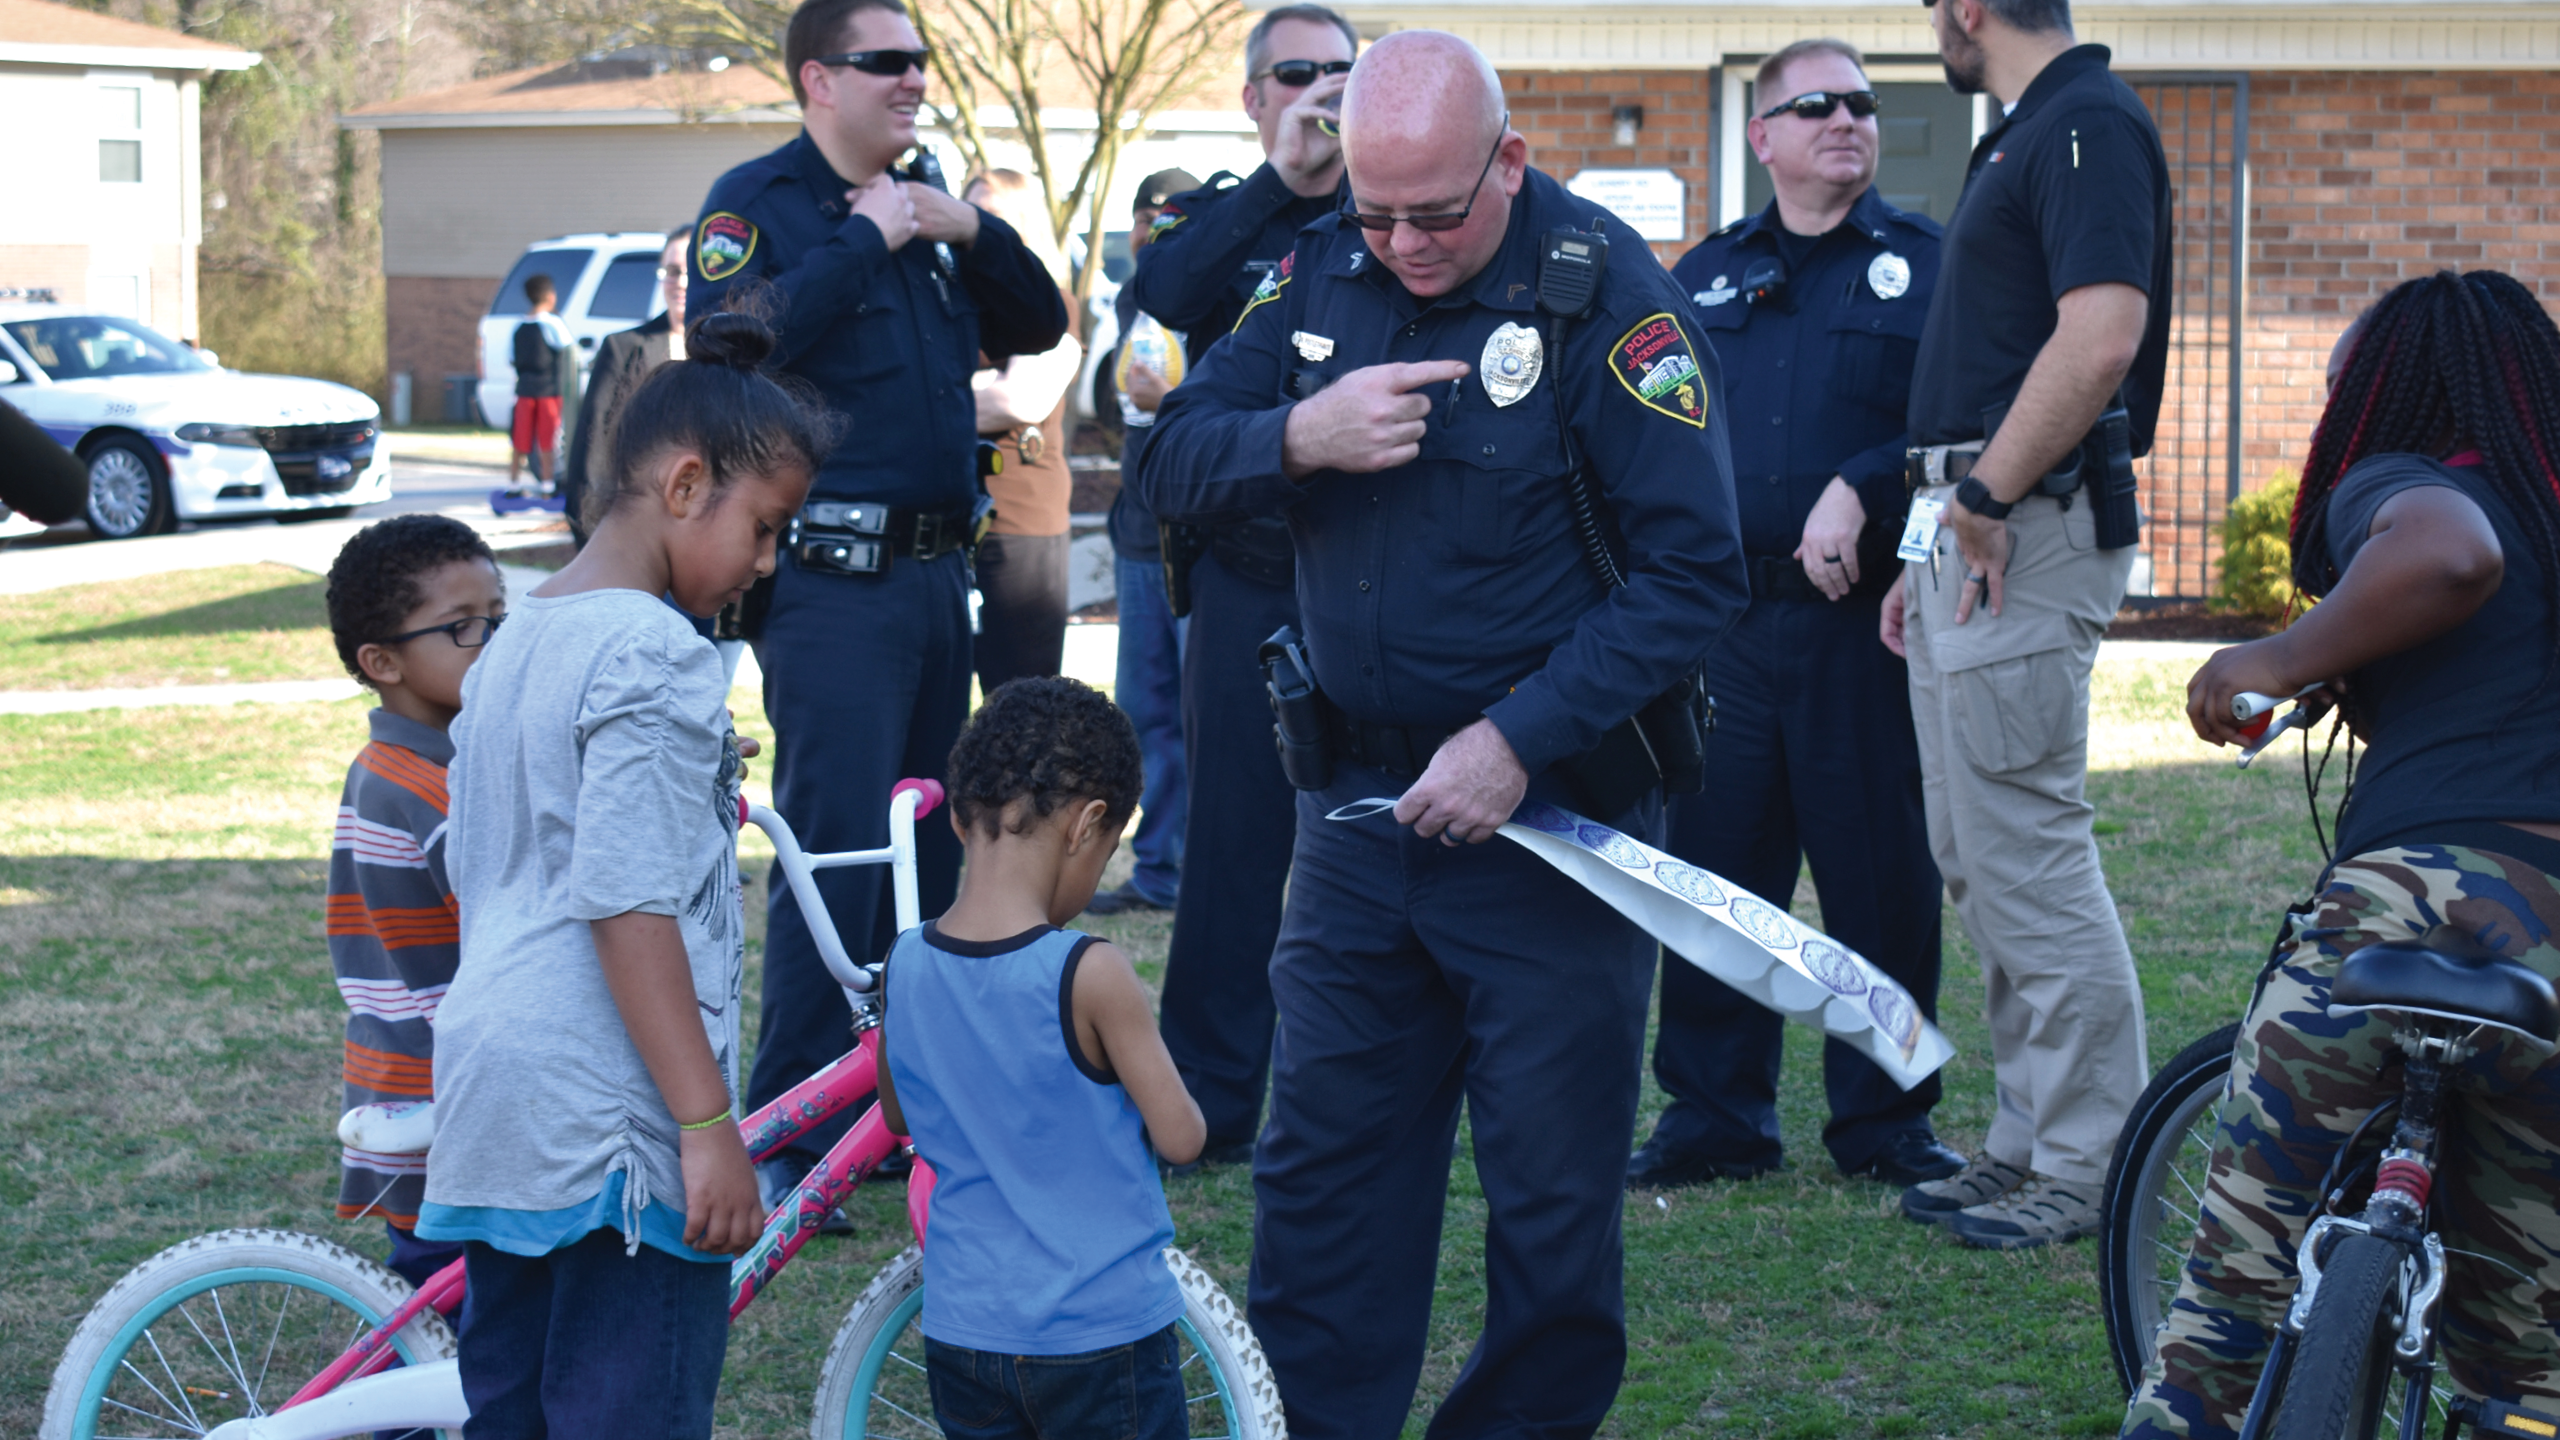 Community Officers Interact with Young Citizens